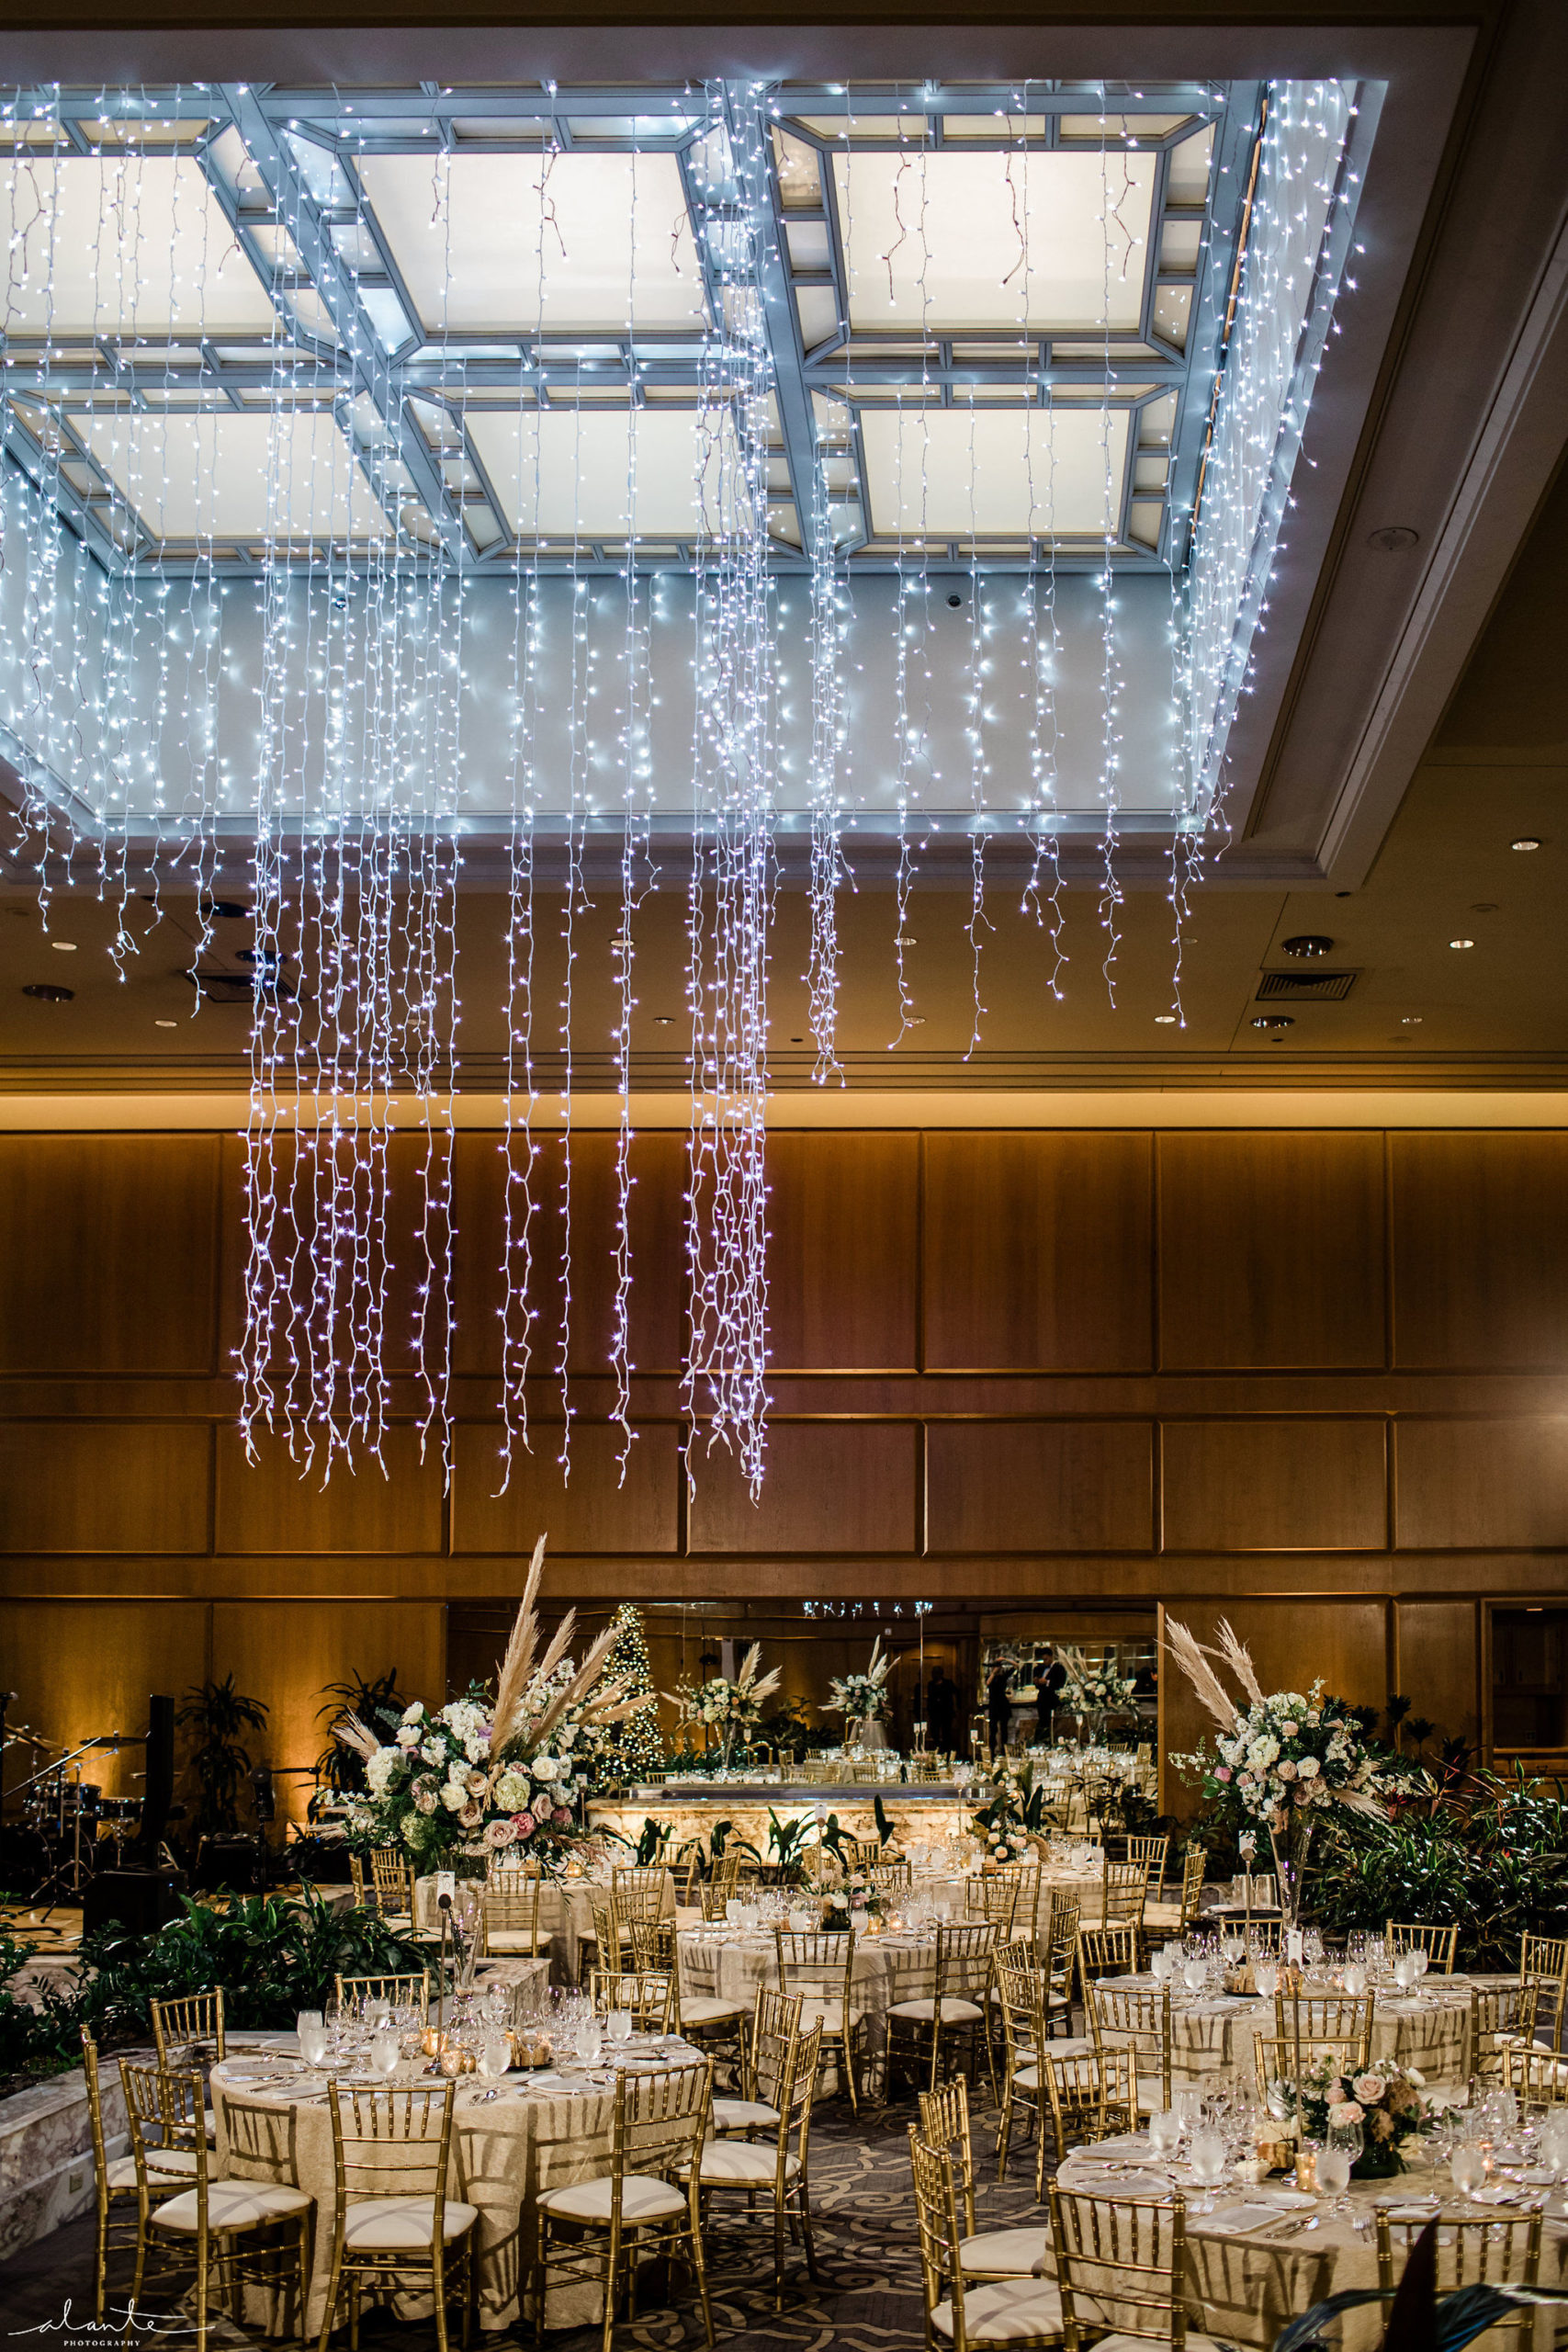 Winter evening ballroom wedding reception with gold chairs and linens under a Christmas light chandelier.